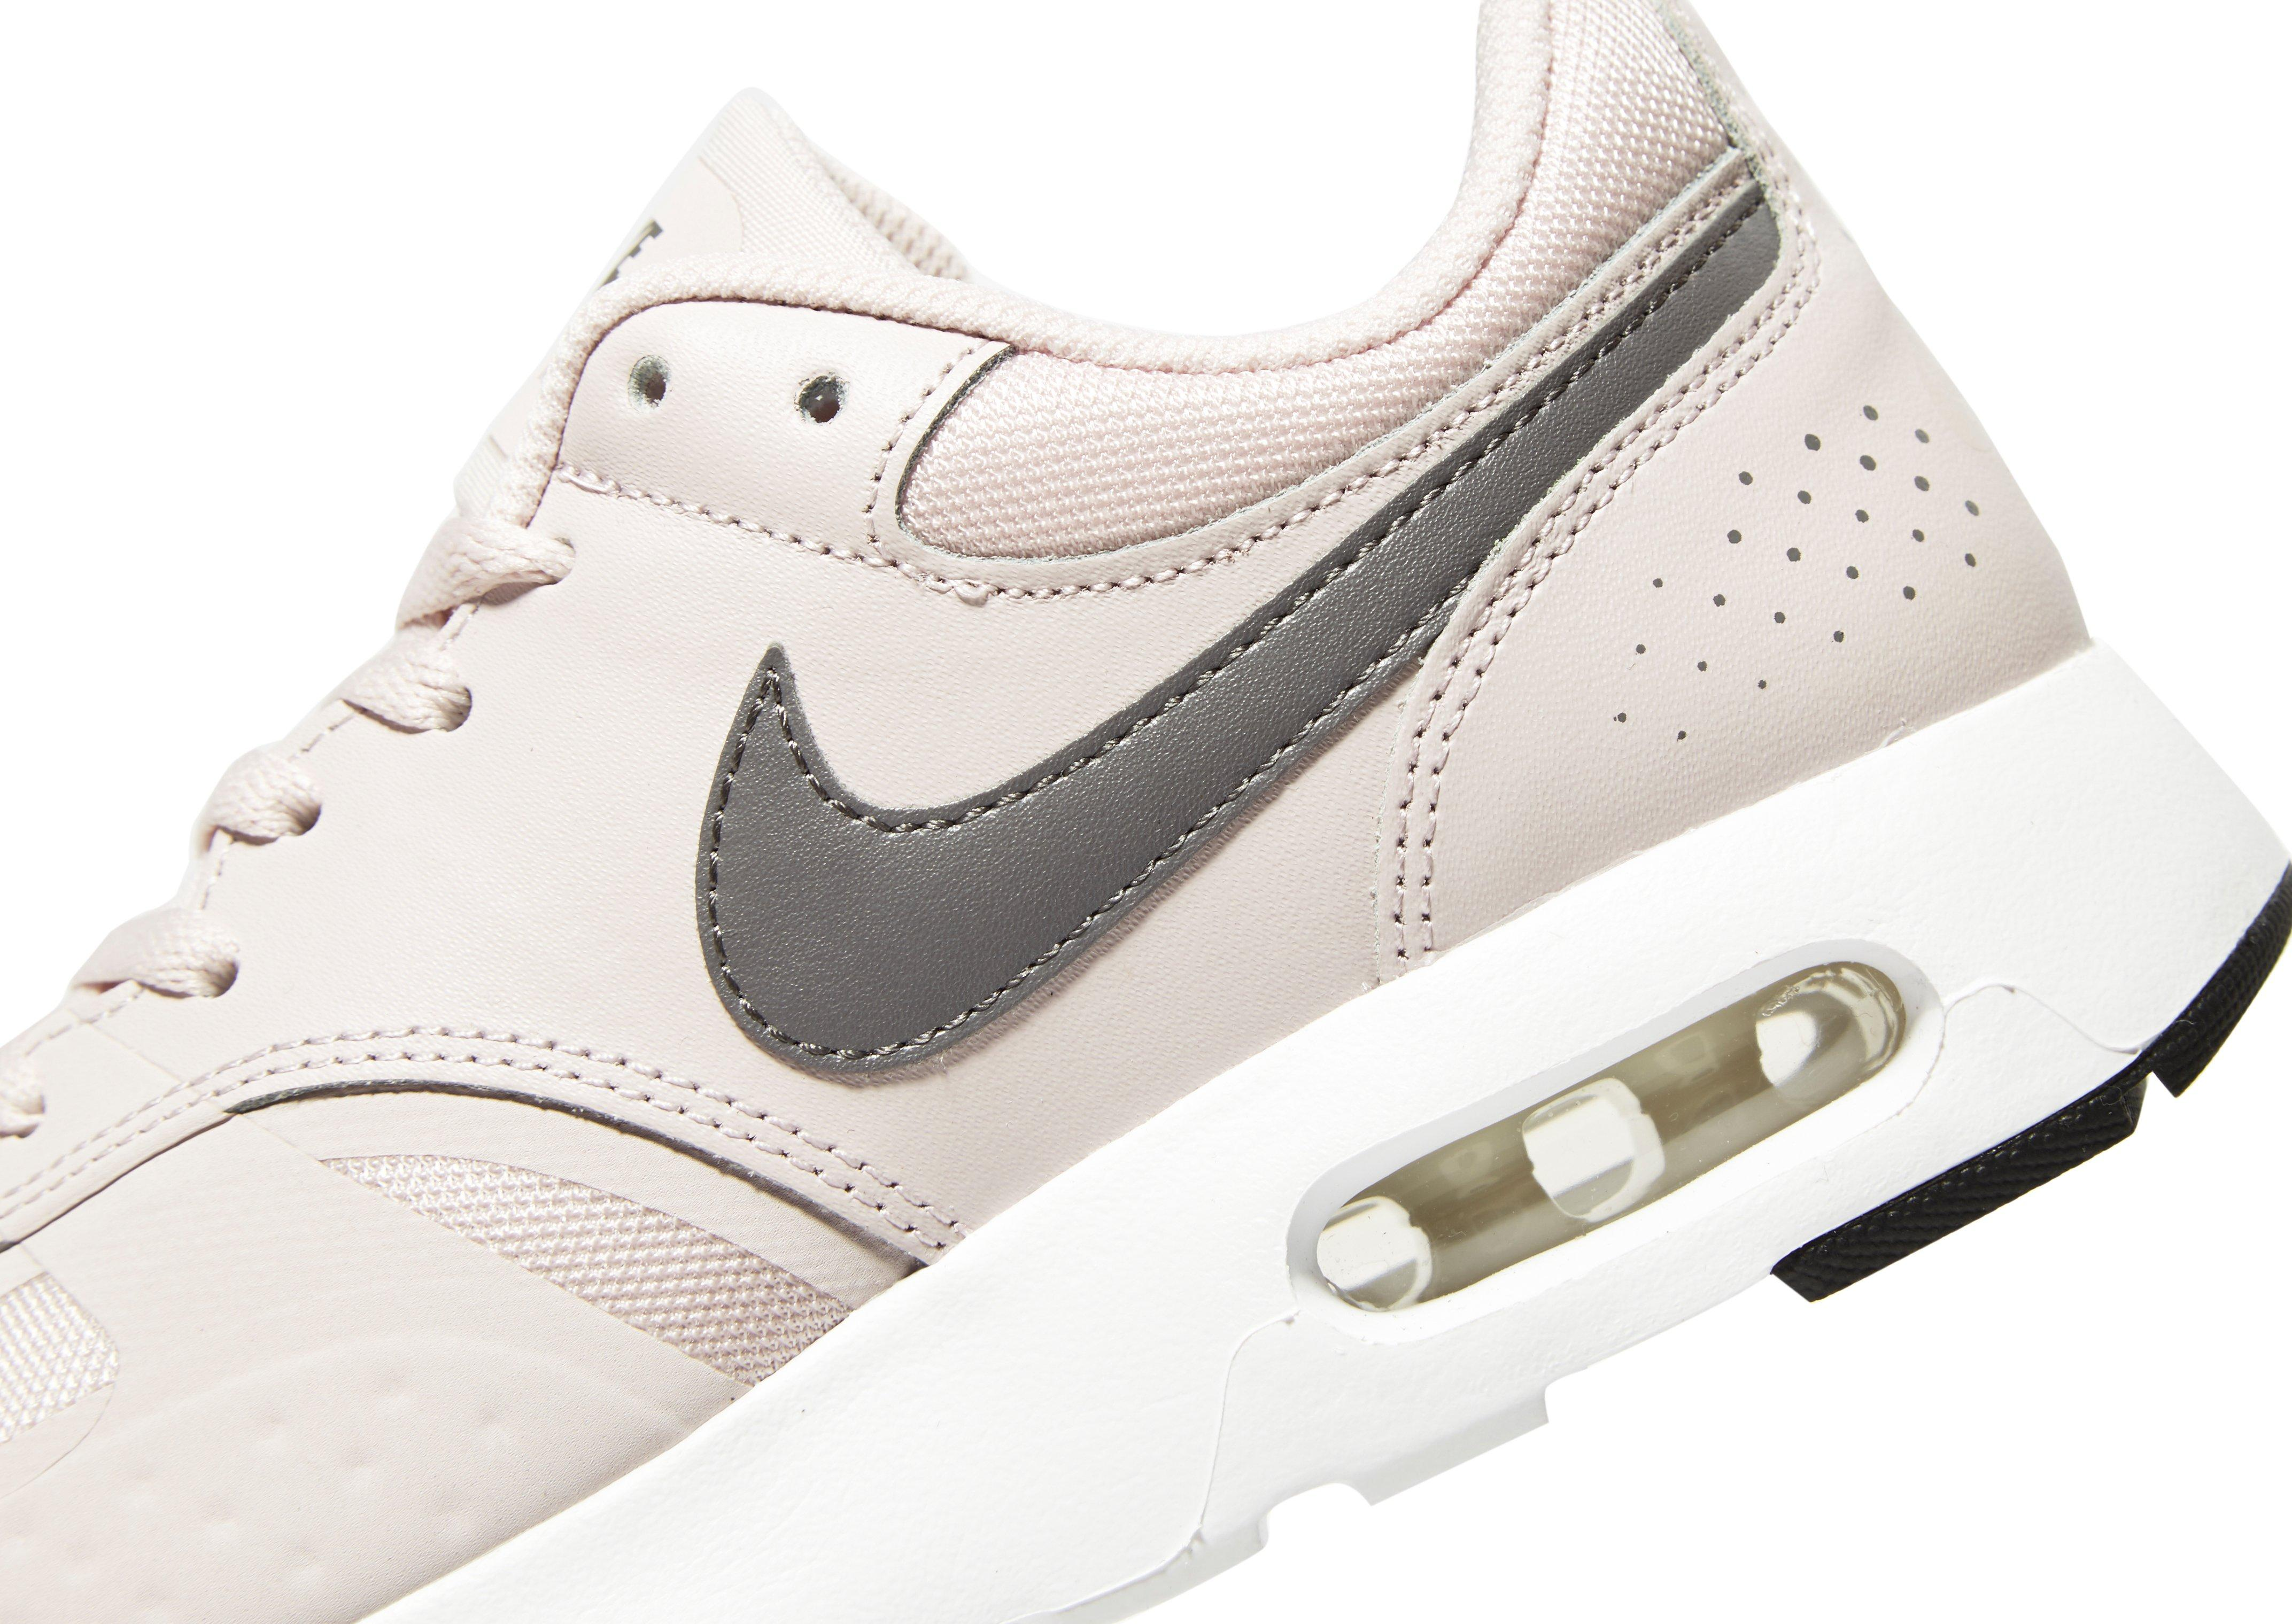 check out 9c35d bc0f8 nike magistax proximo turf. Find deals on products in mens shoes ...